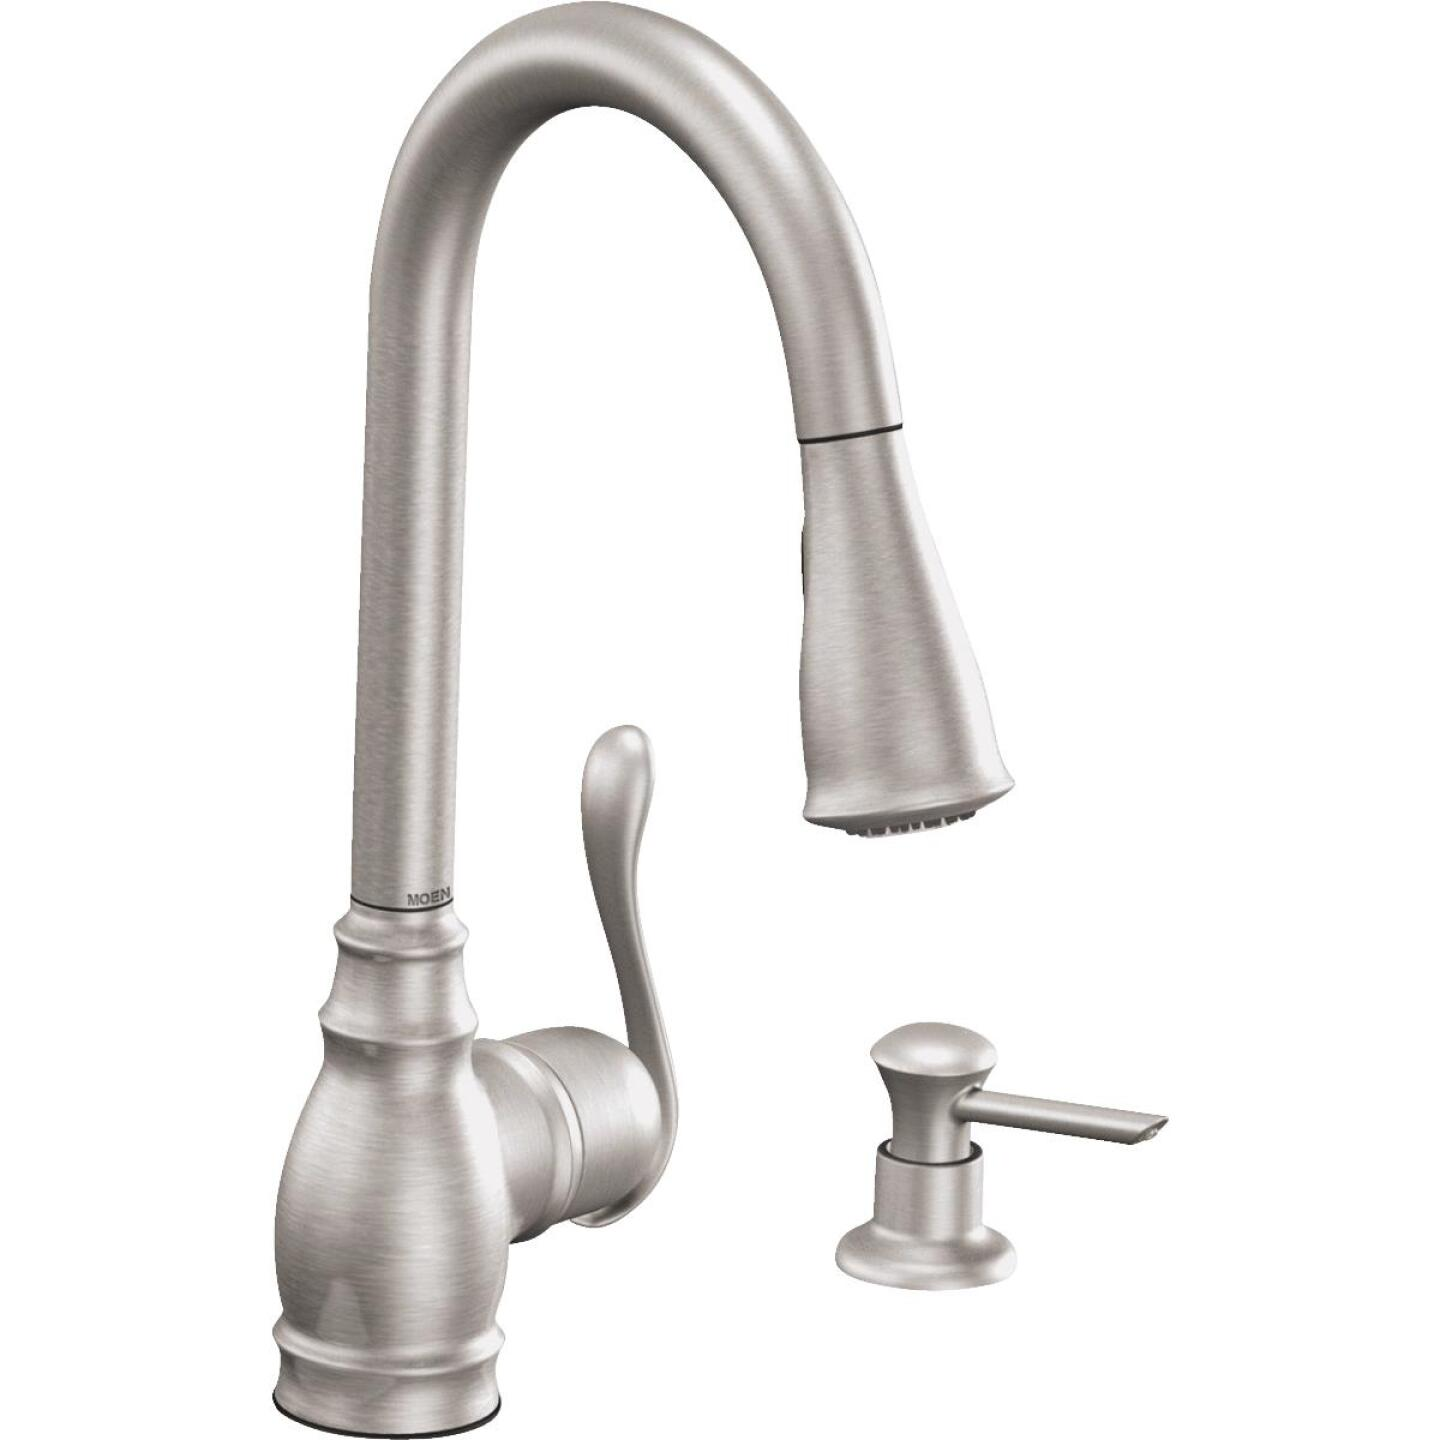 Moen Anabelle Single Handle Lever Pull-Down Kitchen Faucet with Soap Dispenser, Stainless Image 1